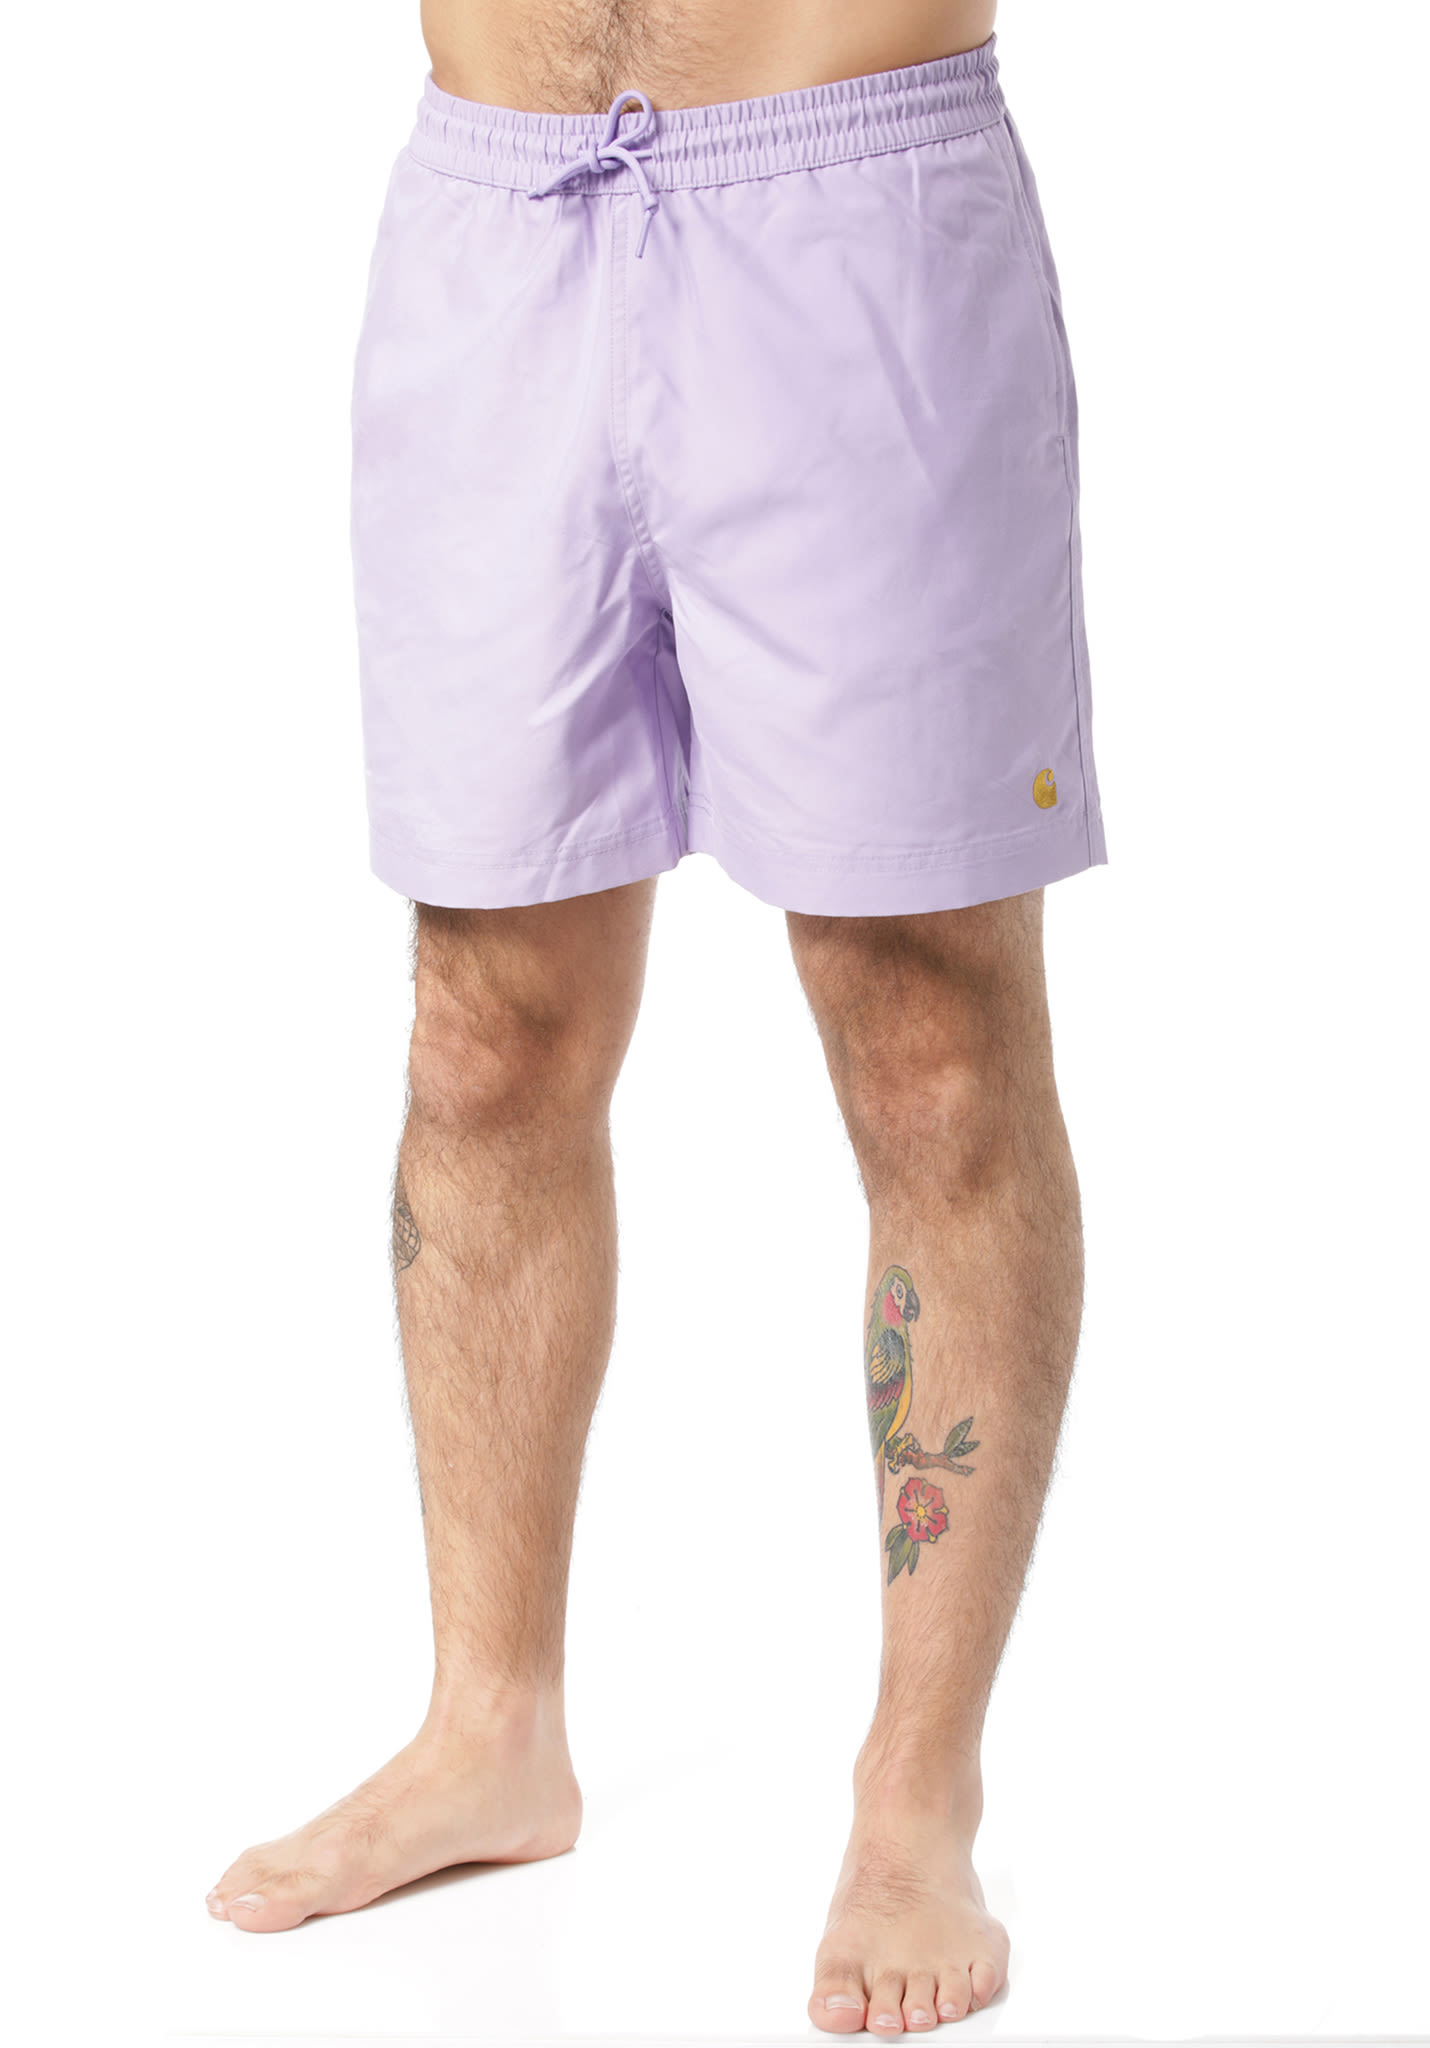 d60a5455ceb4d carhartt WIP Chase Swim Trunk - Boardshorts for Men - Purple ...